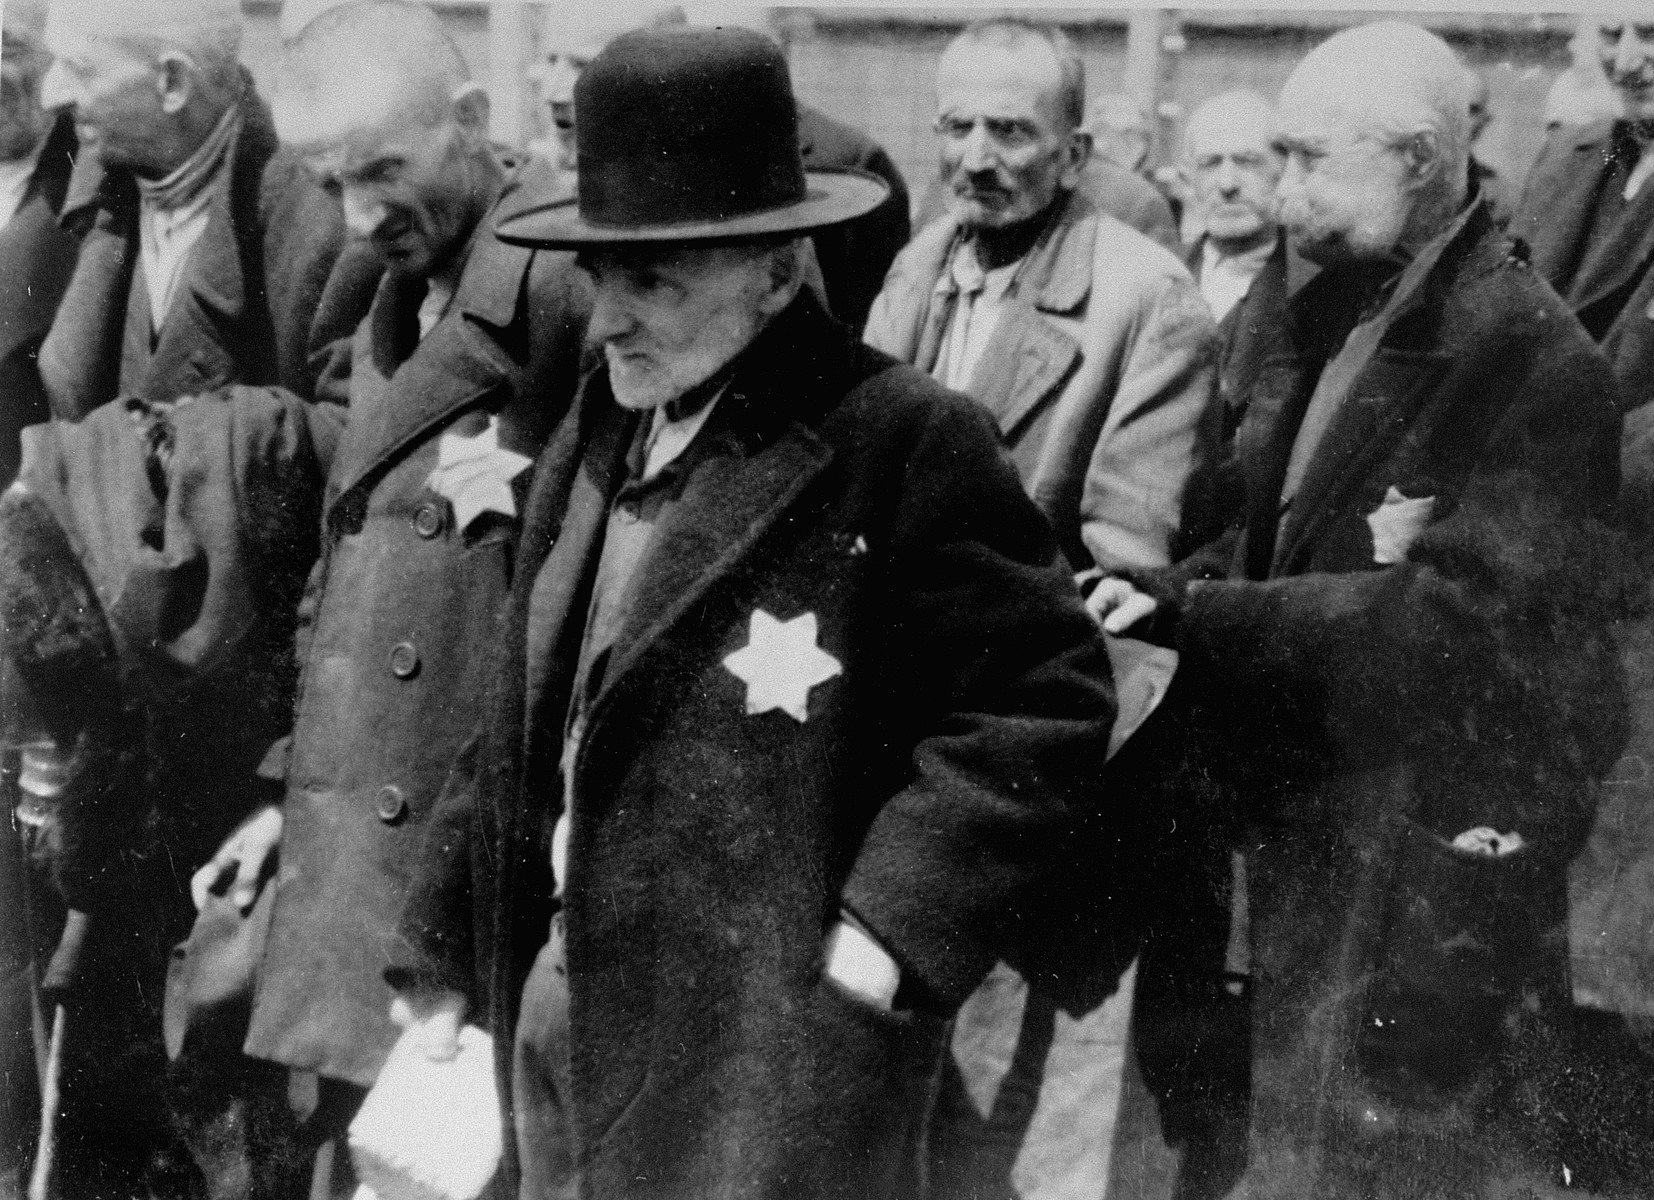 Jewish men from Subcarpathian Rus having undergone selection are about to be gassed at Auschwitz-Birkenau.